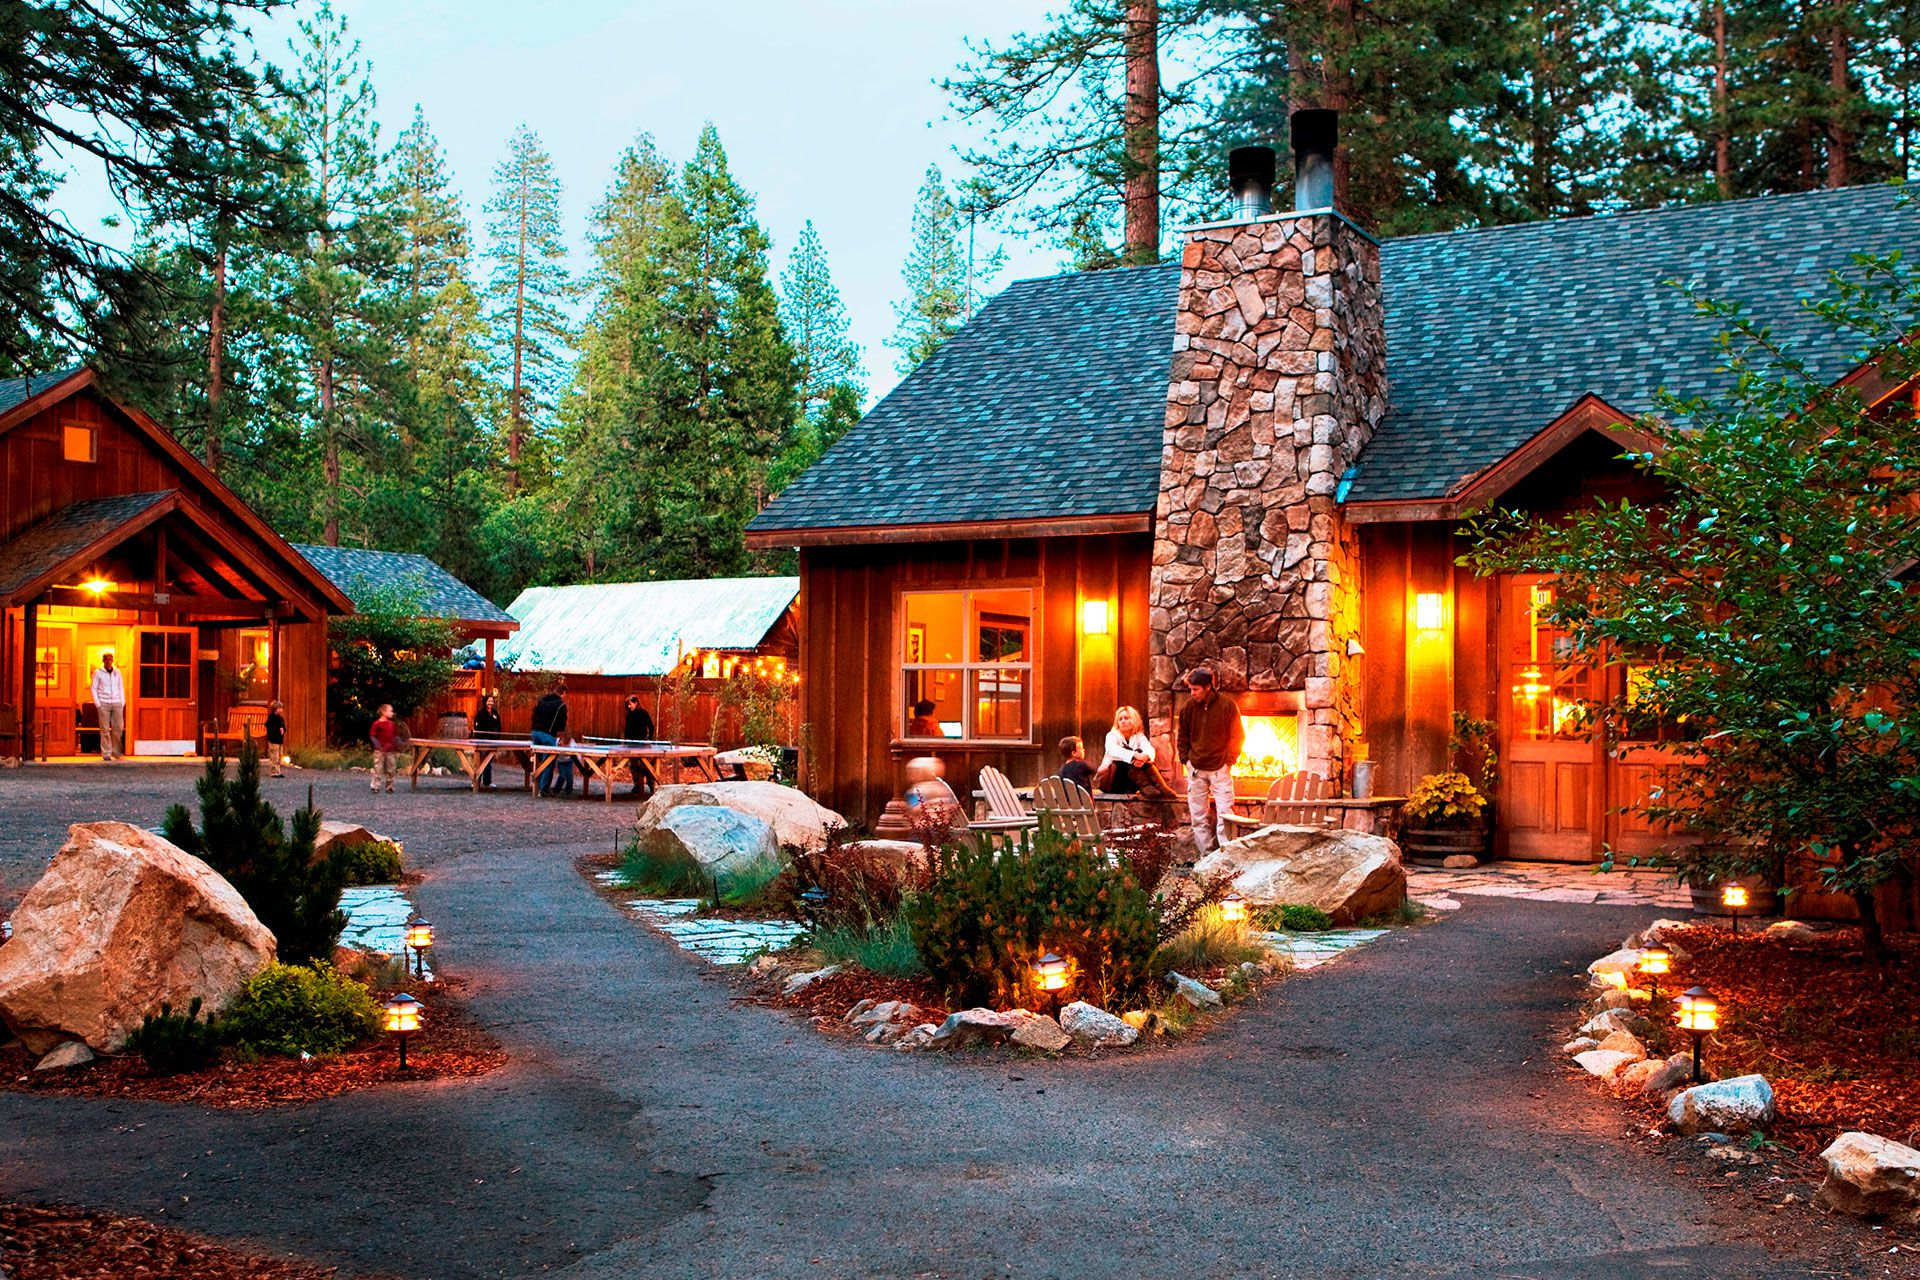 Evergreen Lodge Yosemite Review and Guide